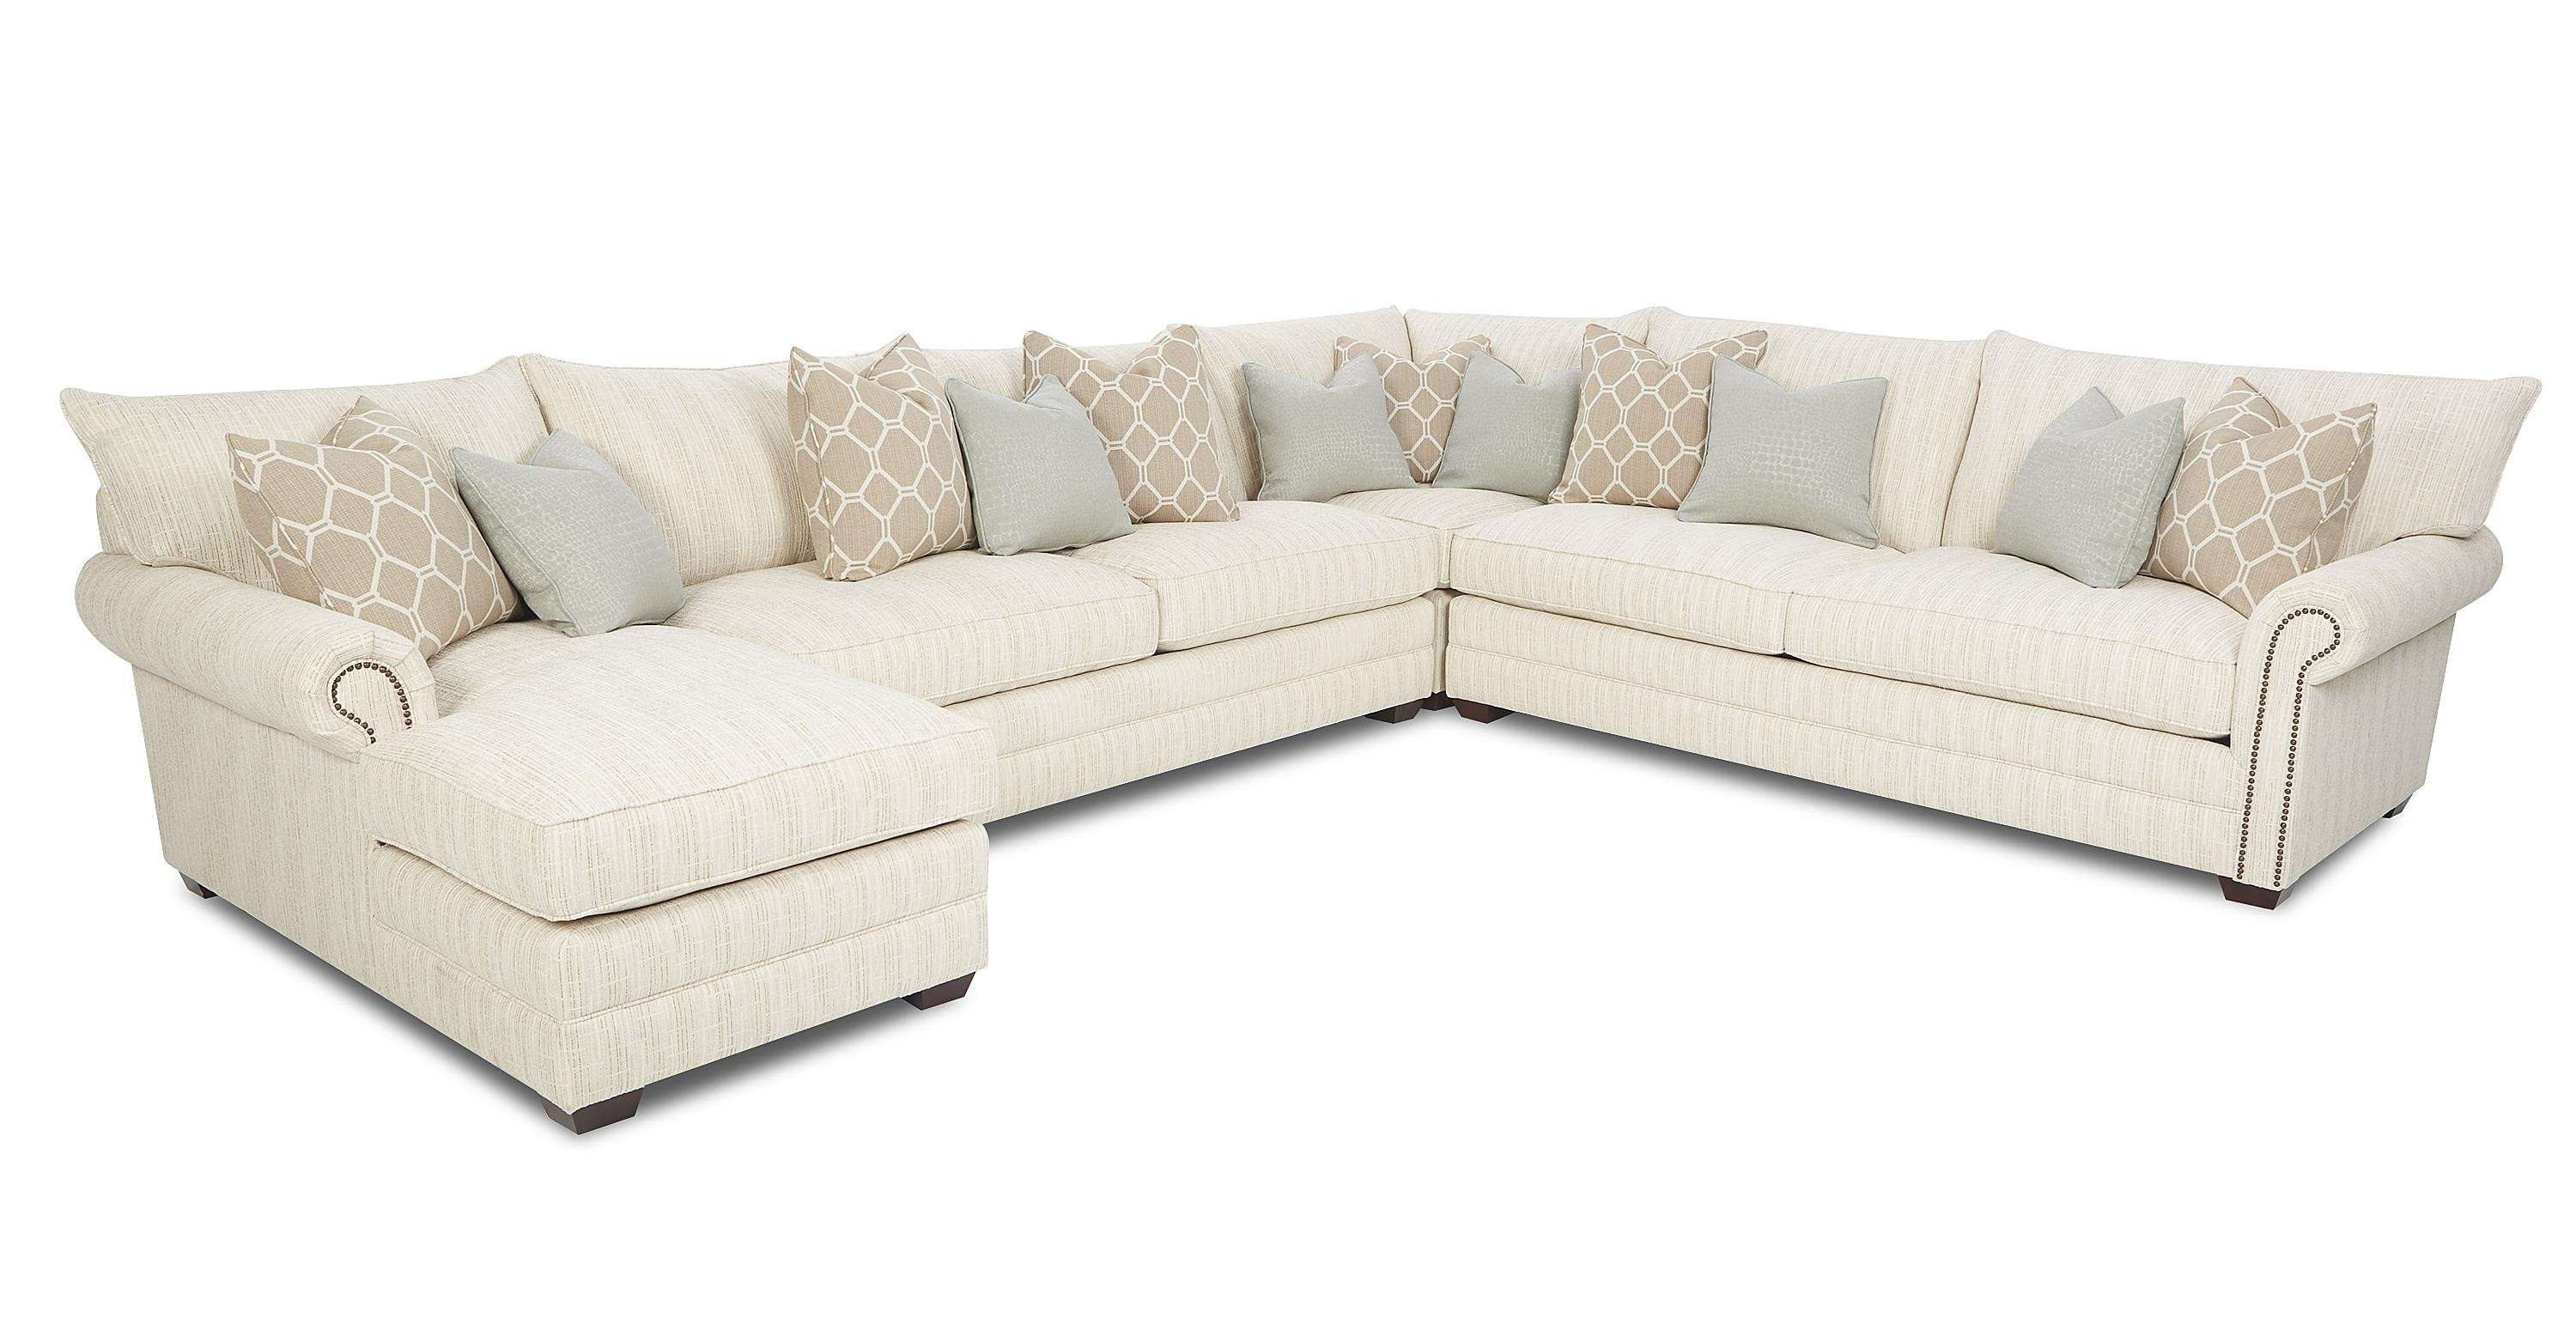 Traditional Sectional Sofa With Nailhead Trim And Chaise Lounge With Sectional Sofas With Nailheads (View 1 of 10)